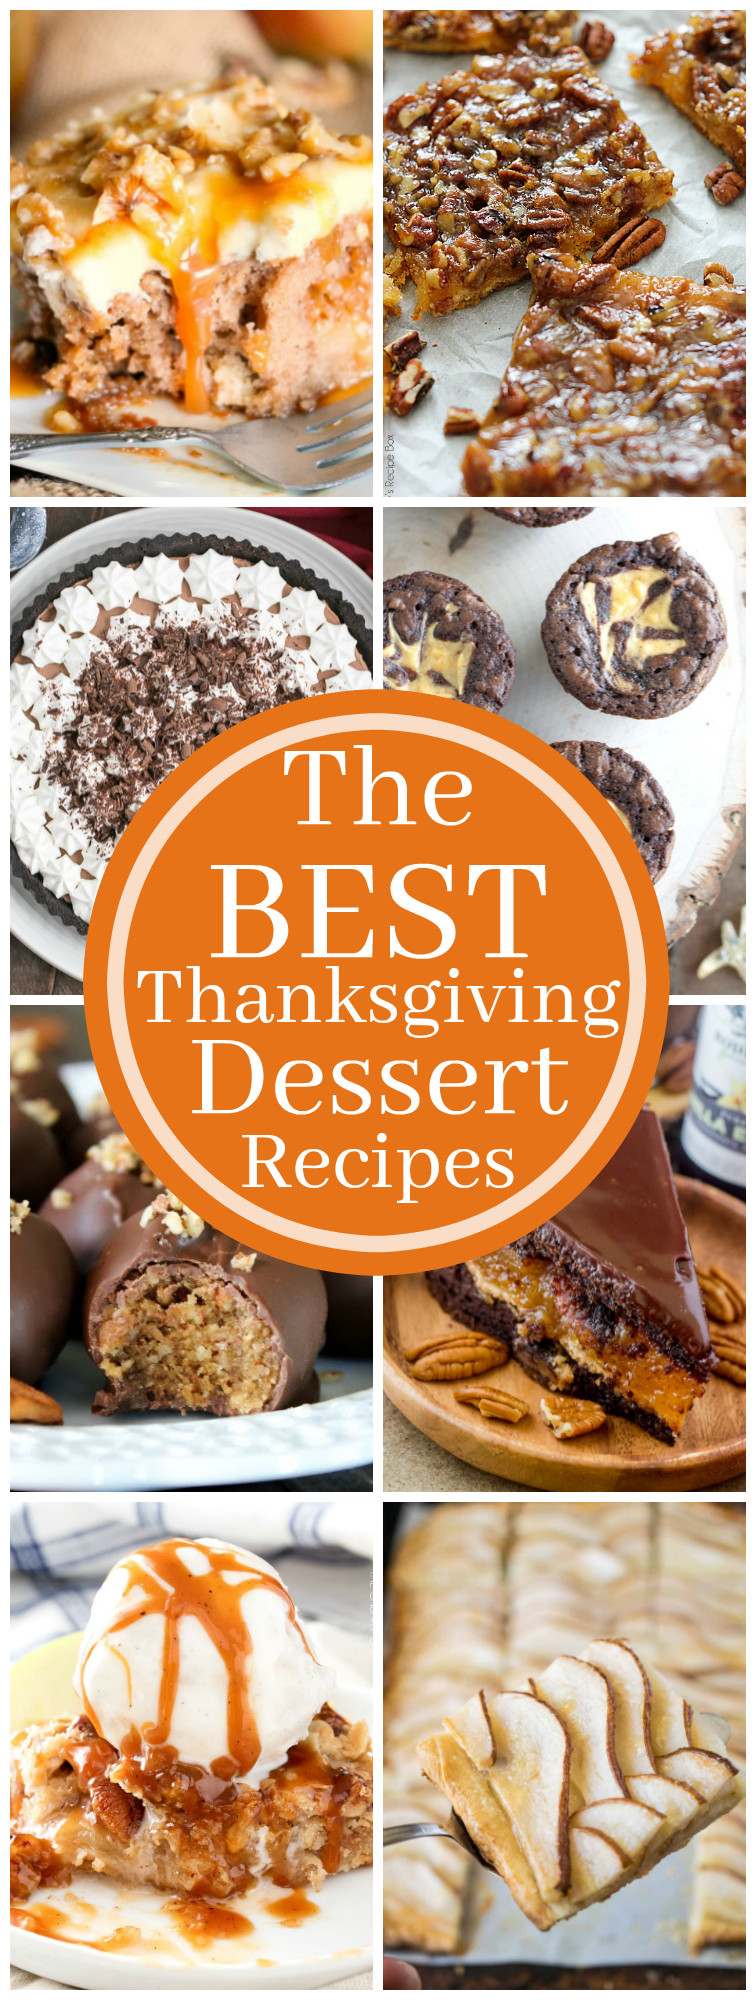 Chocolate Desserts For Thanksgiving  The Best Thanksgiving Dessert Recipes The Chunky Chef